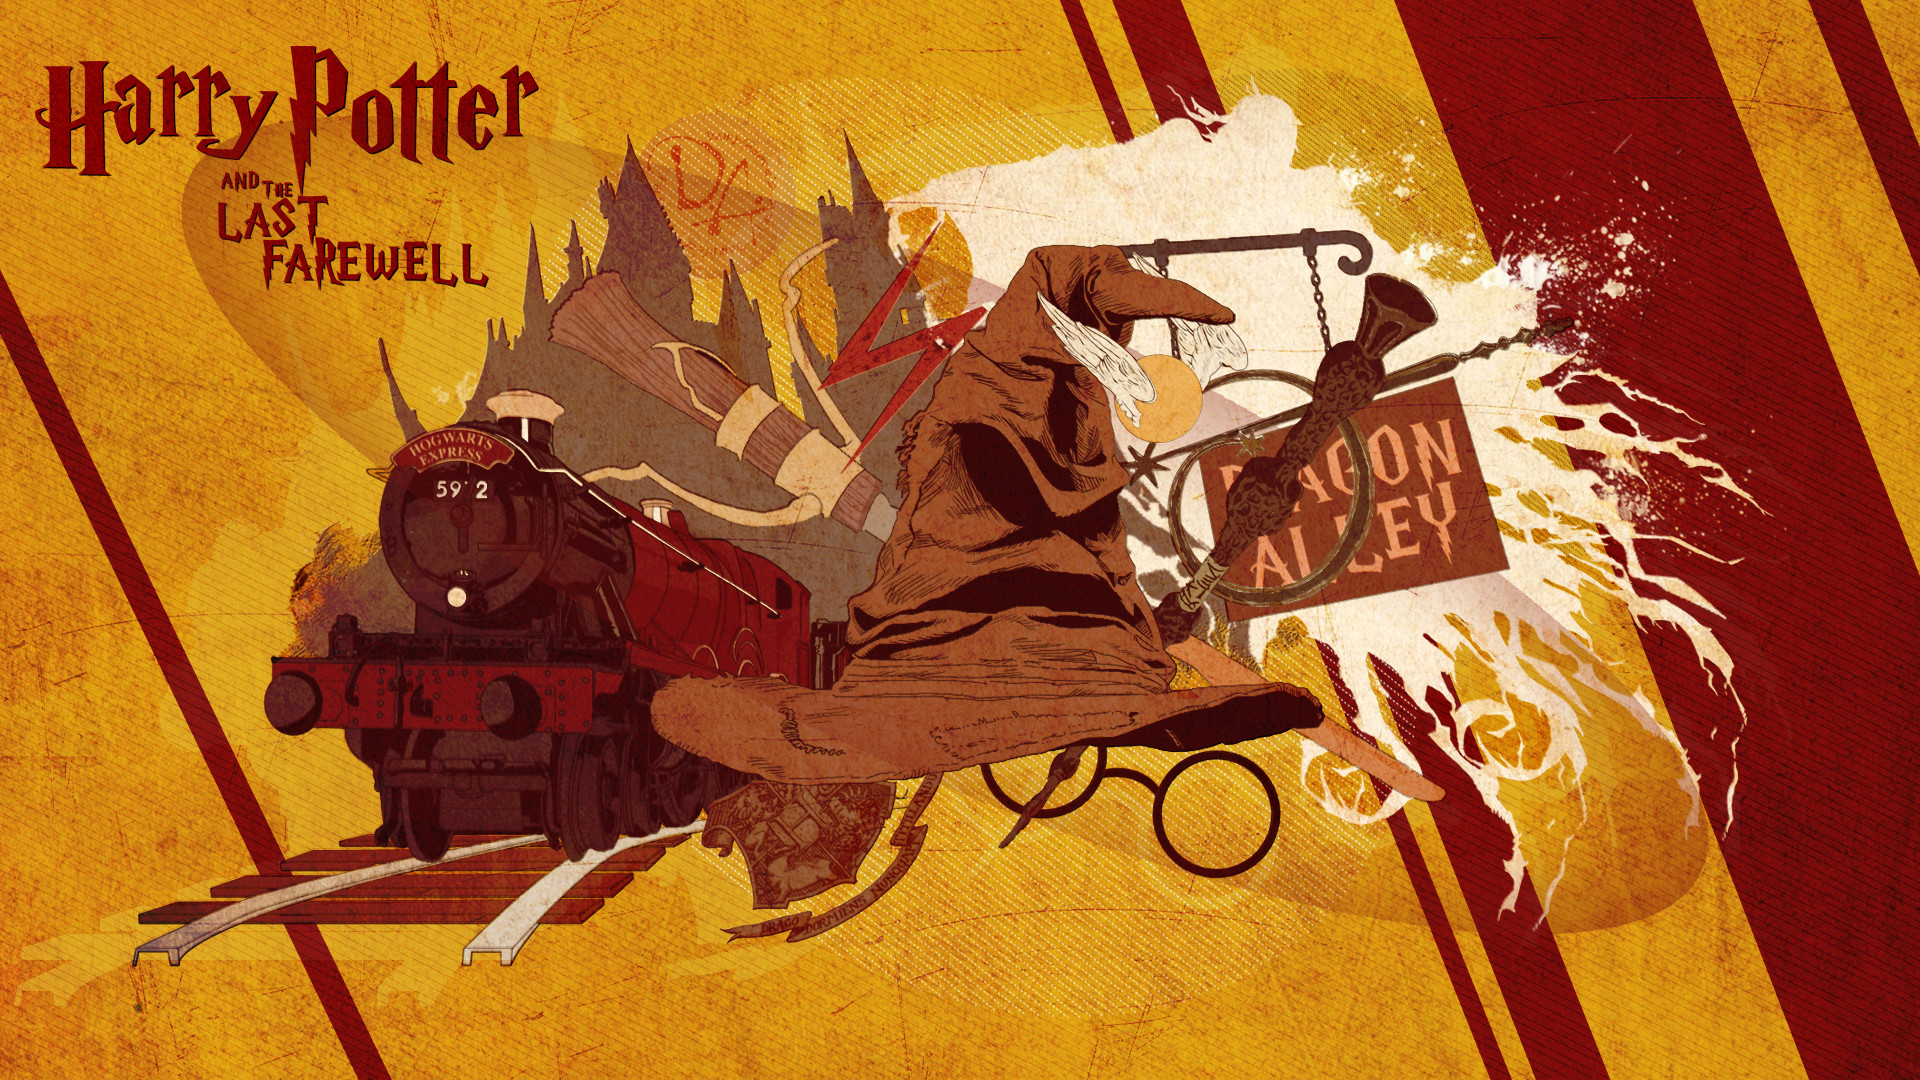 Harry Potter Book Cover Wallpaper ~ Harry potter book wallpapers ·①